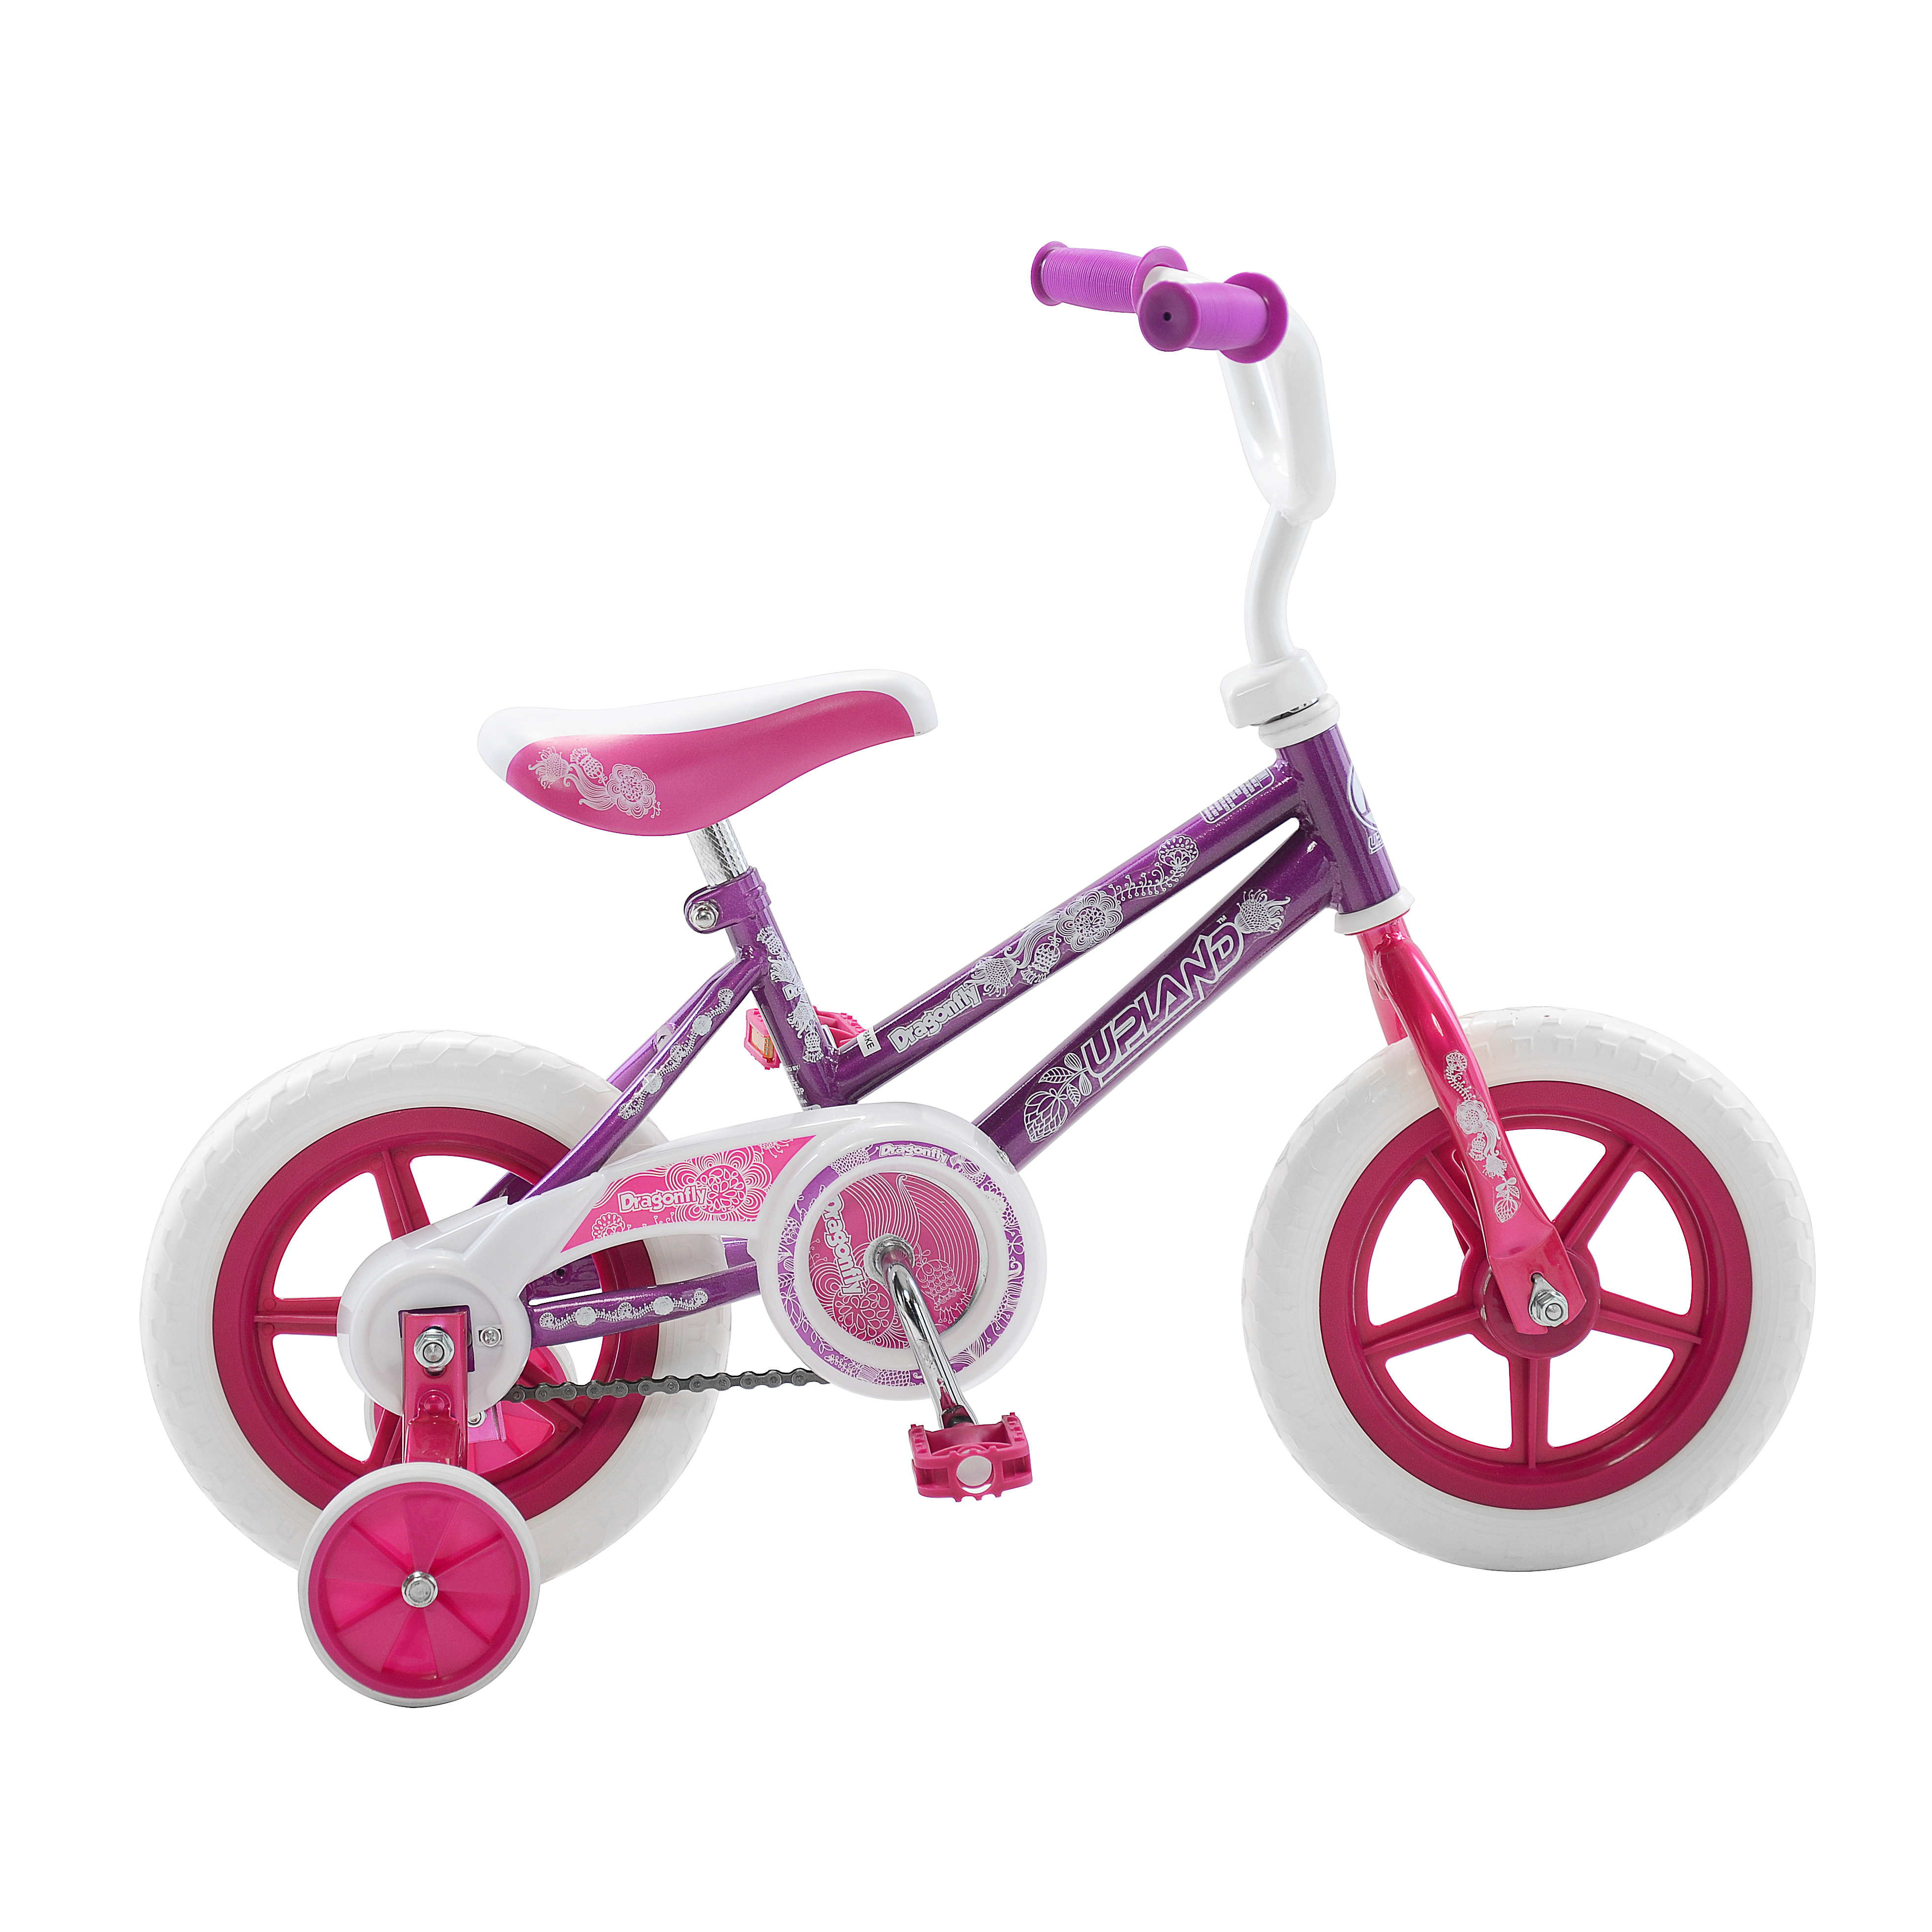 "Dragonfly 12"" Girls Bicycle by Upland"